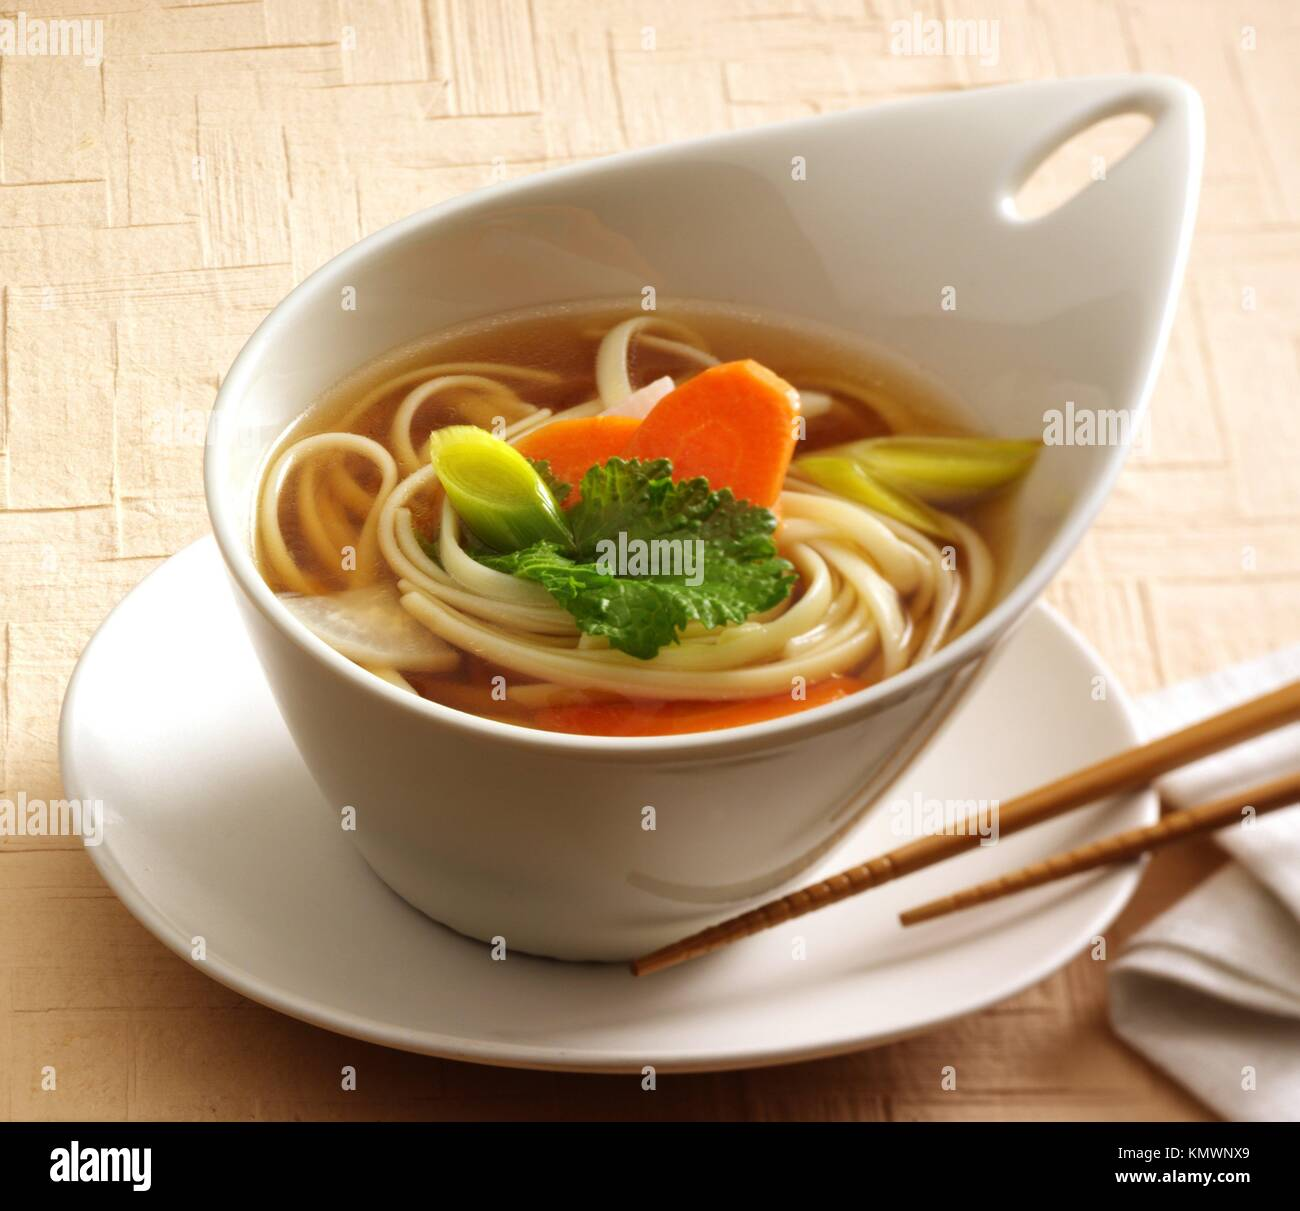 Wor mein  Chinese gastronomy - Stock Image